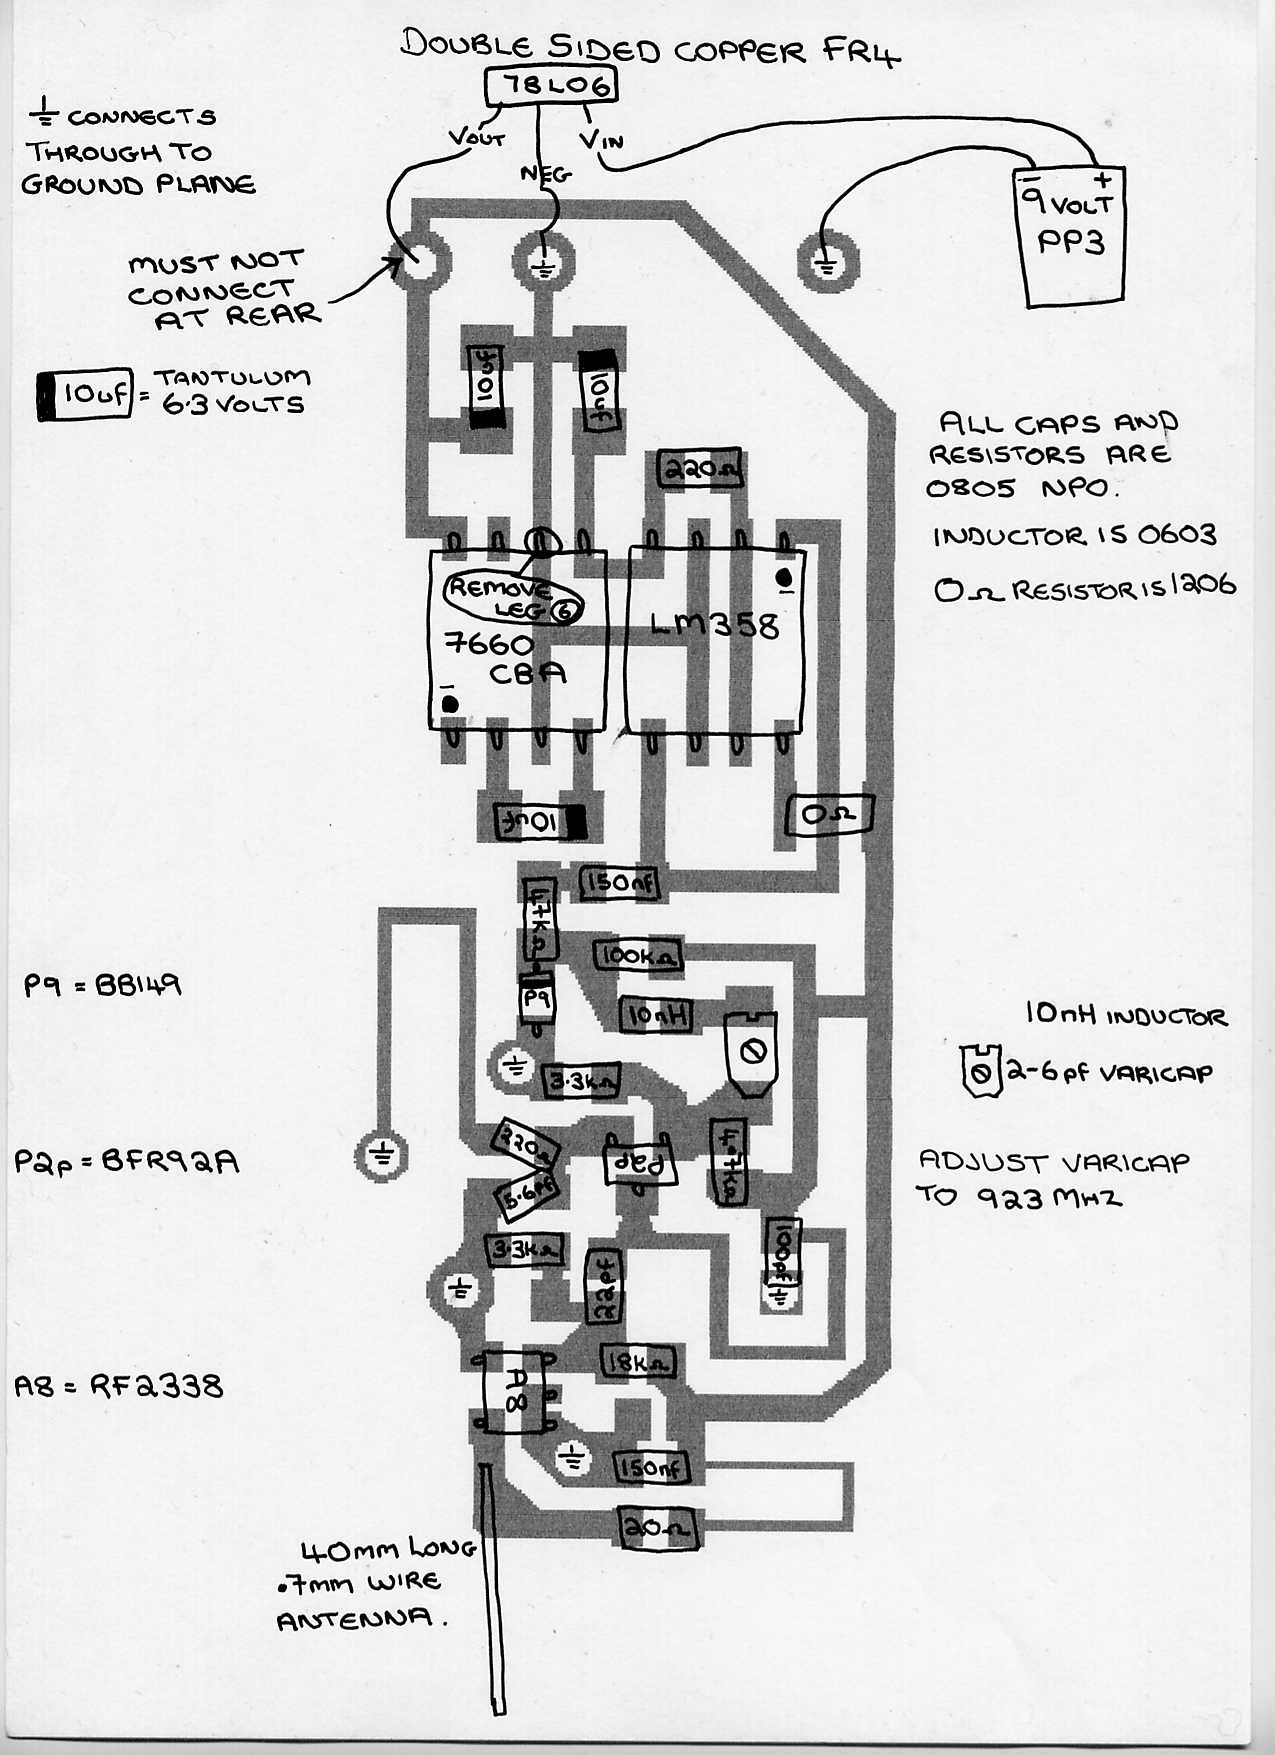 Gbppr Cellular Phone Jammers Fm Circuit Page 2 Rf Circuits Nextgr Schematic Diagram For A Homebrew P2jbz Style Jammer